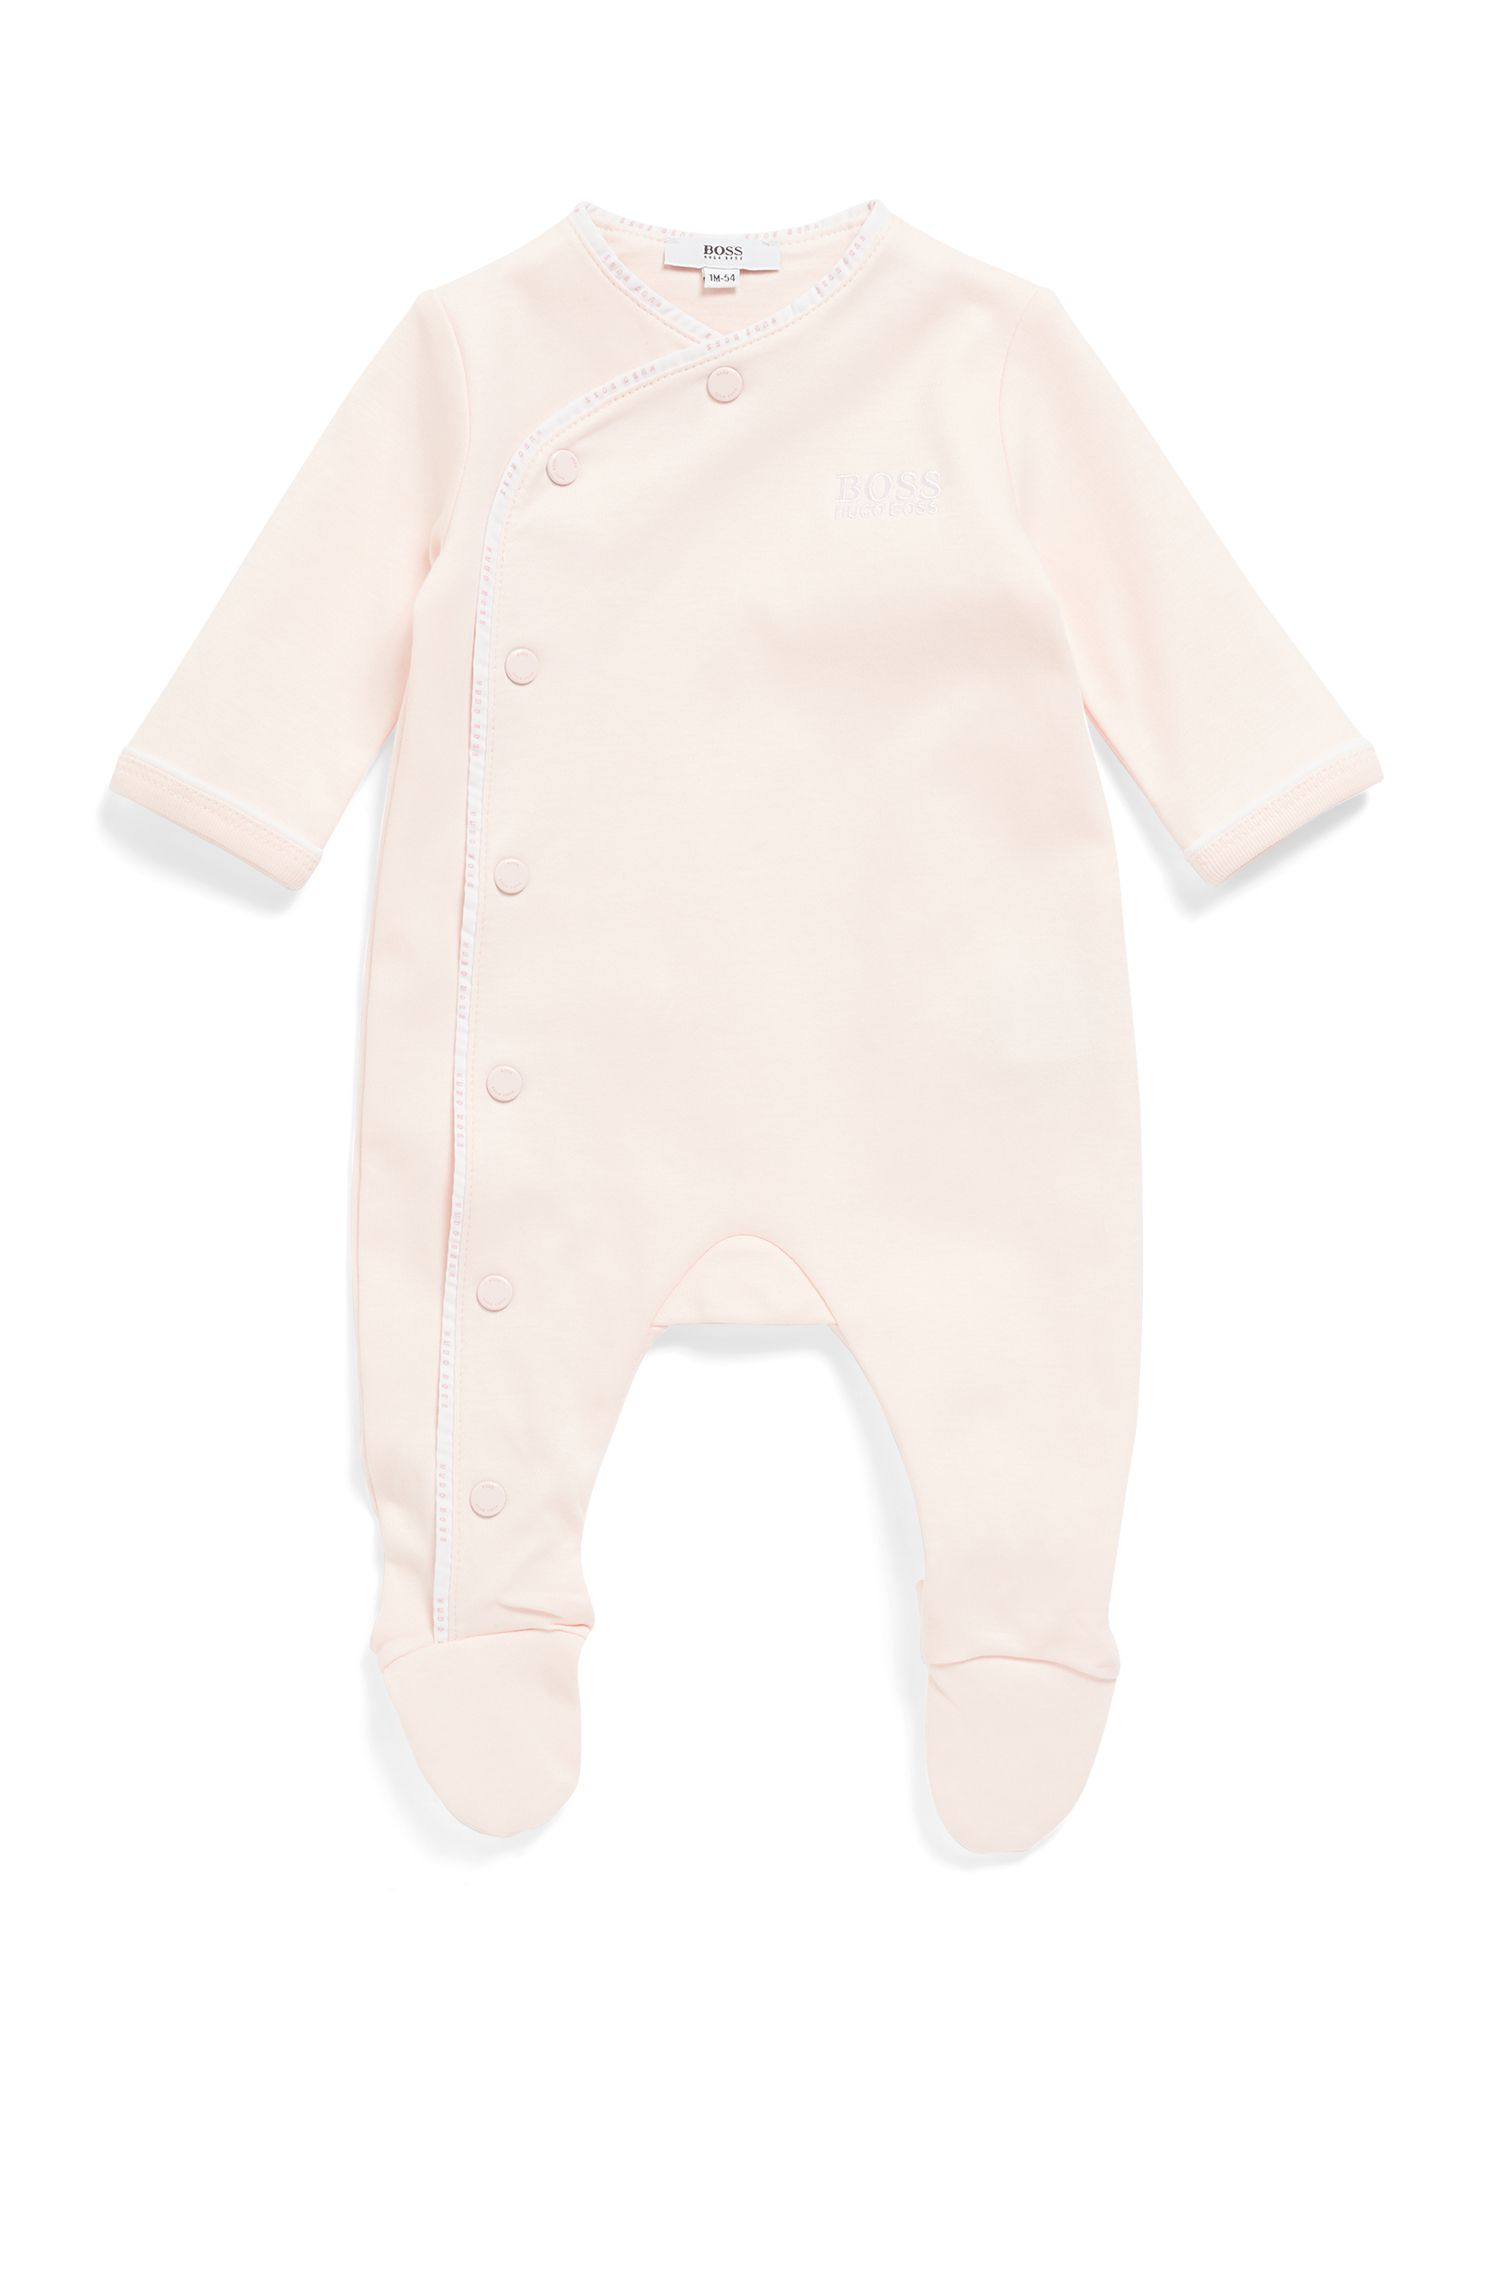 Baby sleepsuit in cotton with logo-braid binding, light pink